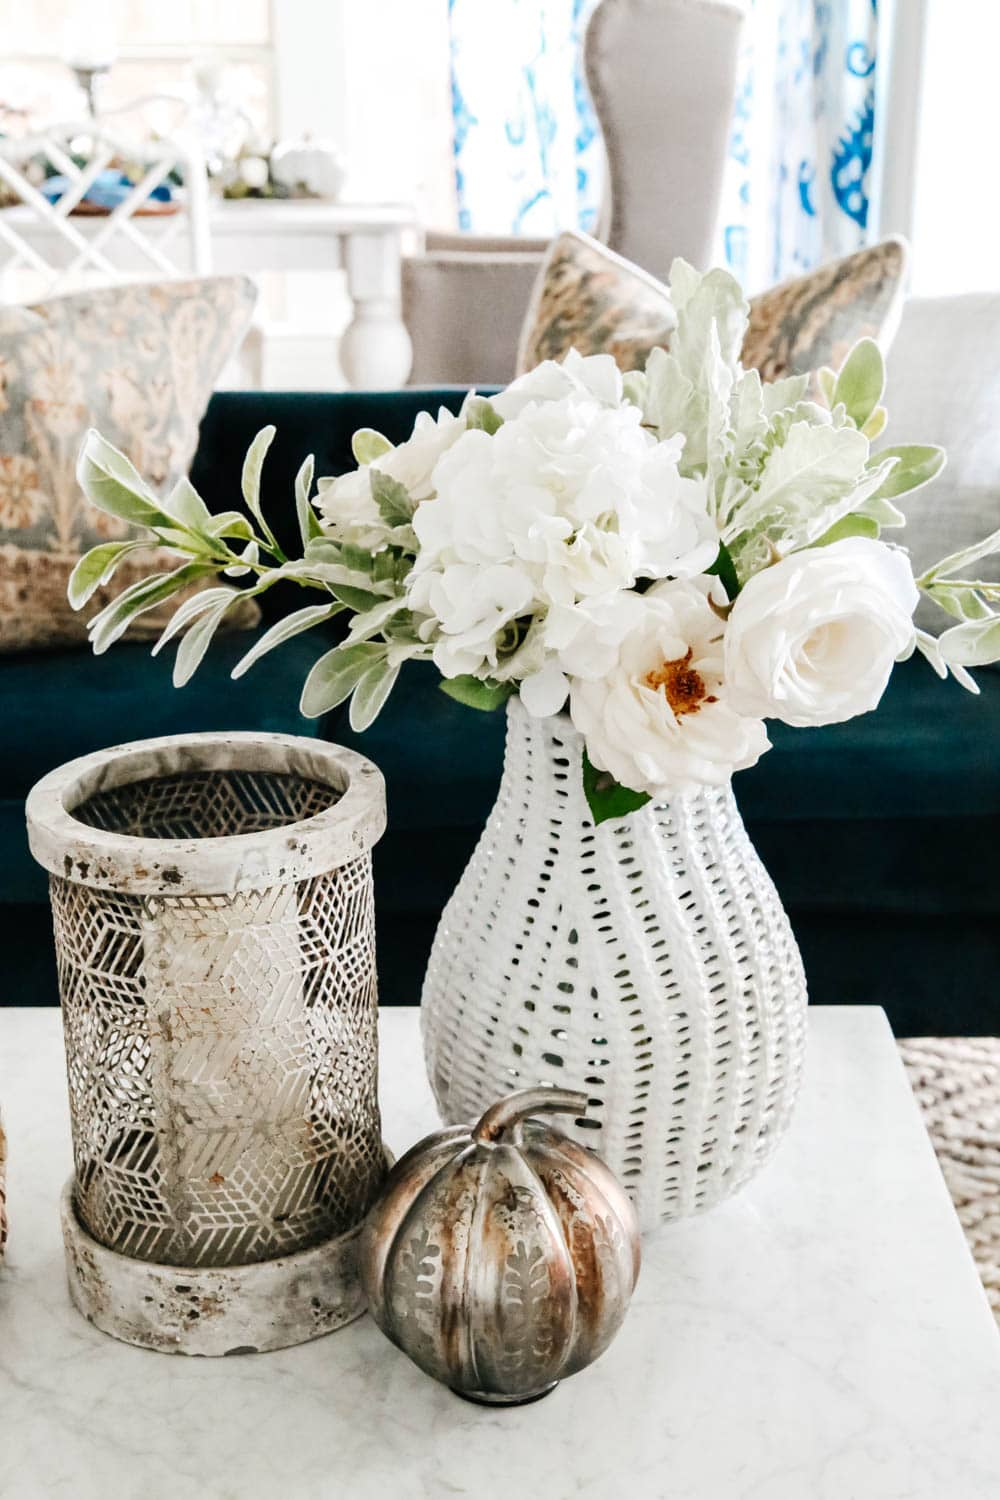 Vintage pieces mixed with more modern decor for an eclectic fall decor look for the living room. #ABlissfulNest #falldecorating #falldecor #livingroomideas